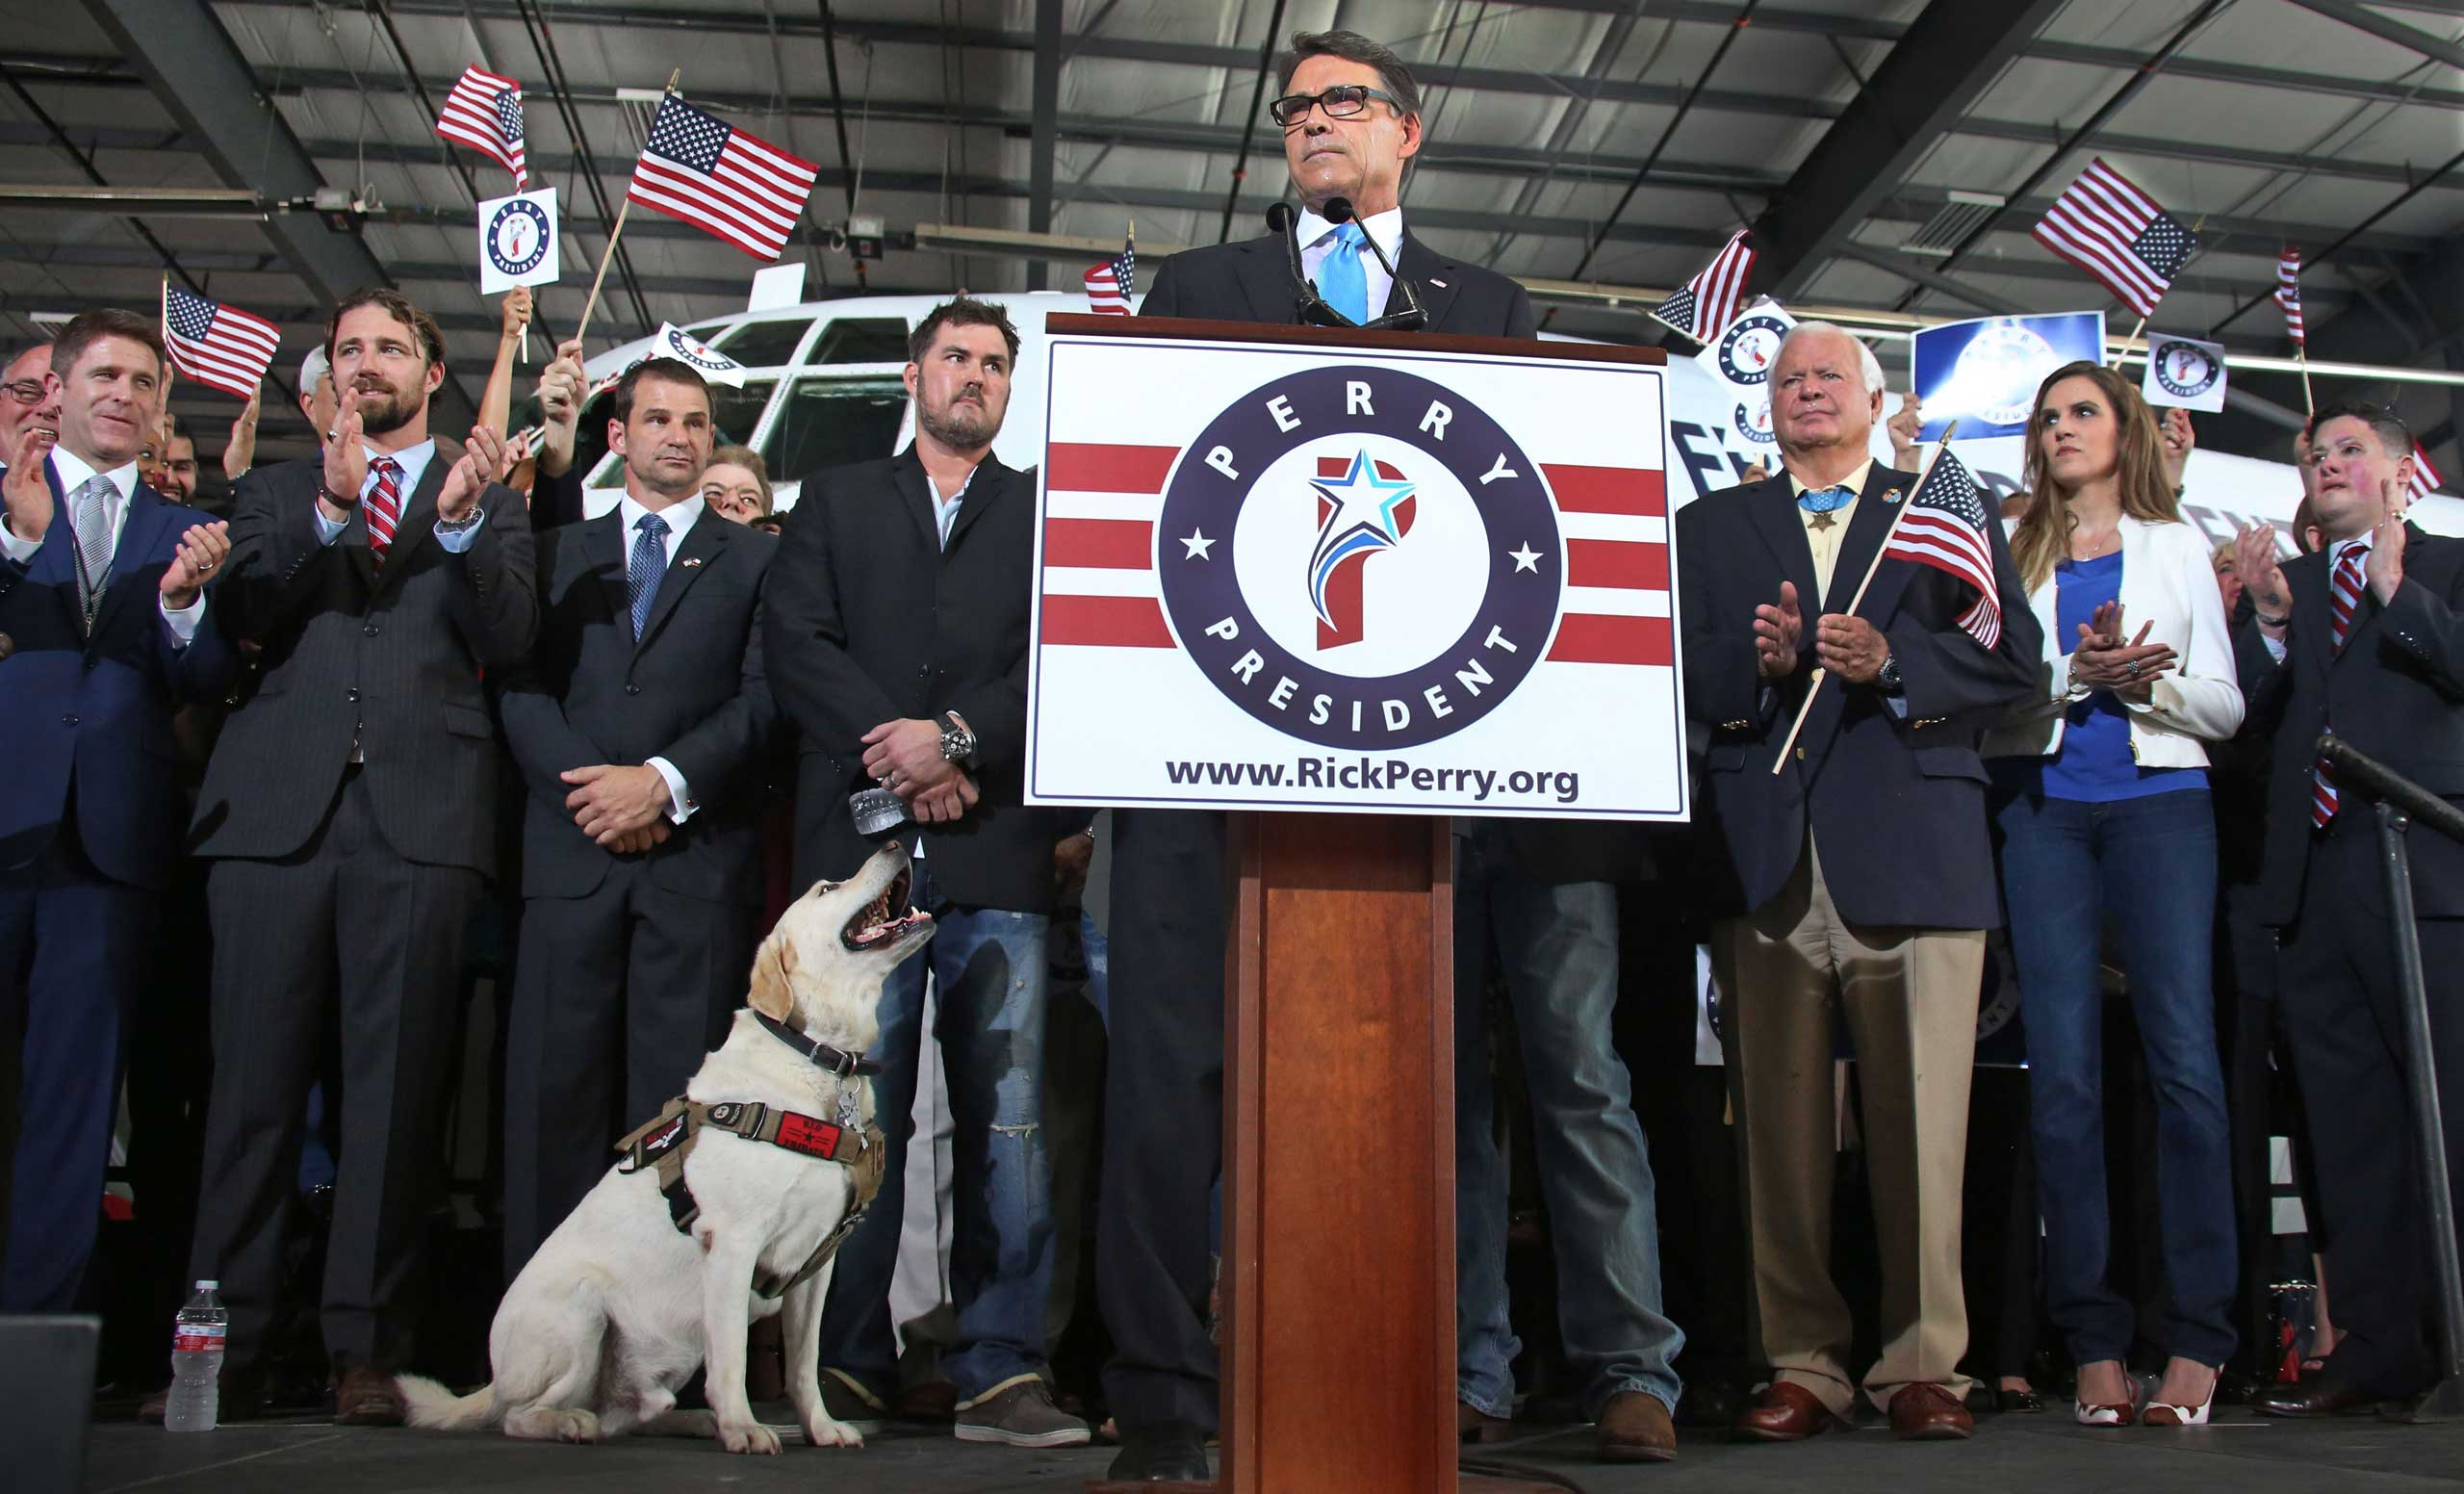 Former Texas governor Rick Perry announces his candidacy for Republican presidential nominee at an event held at Addison Airport in Addison, Texas on Thursday, June 4, 2015.